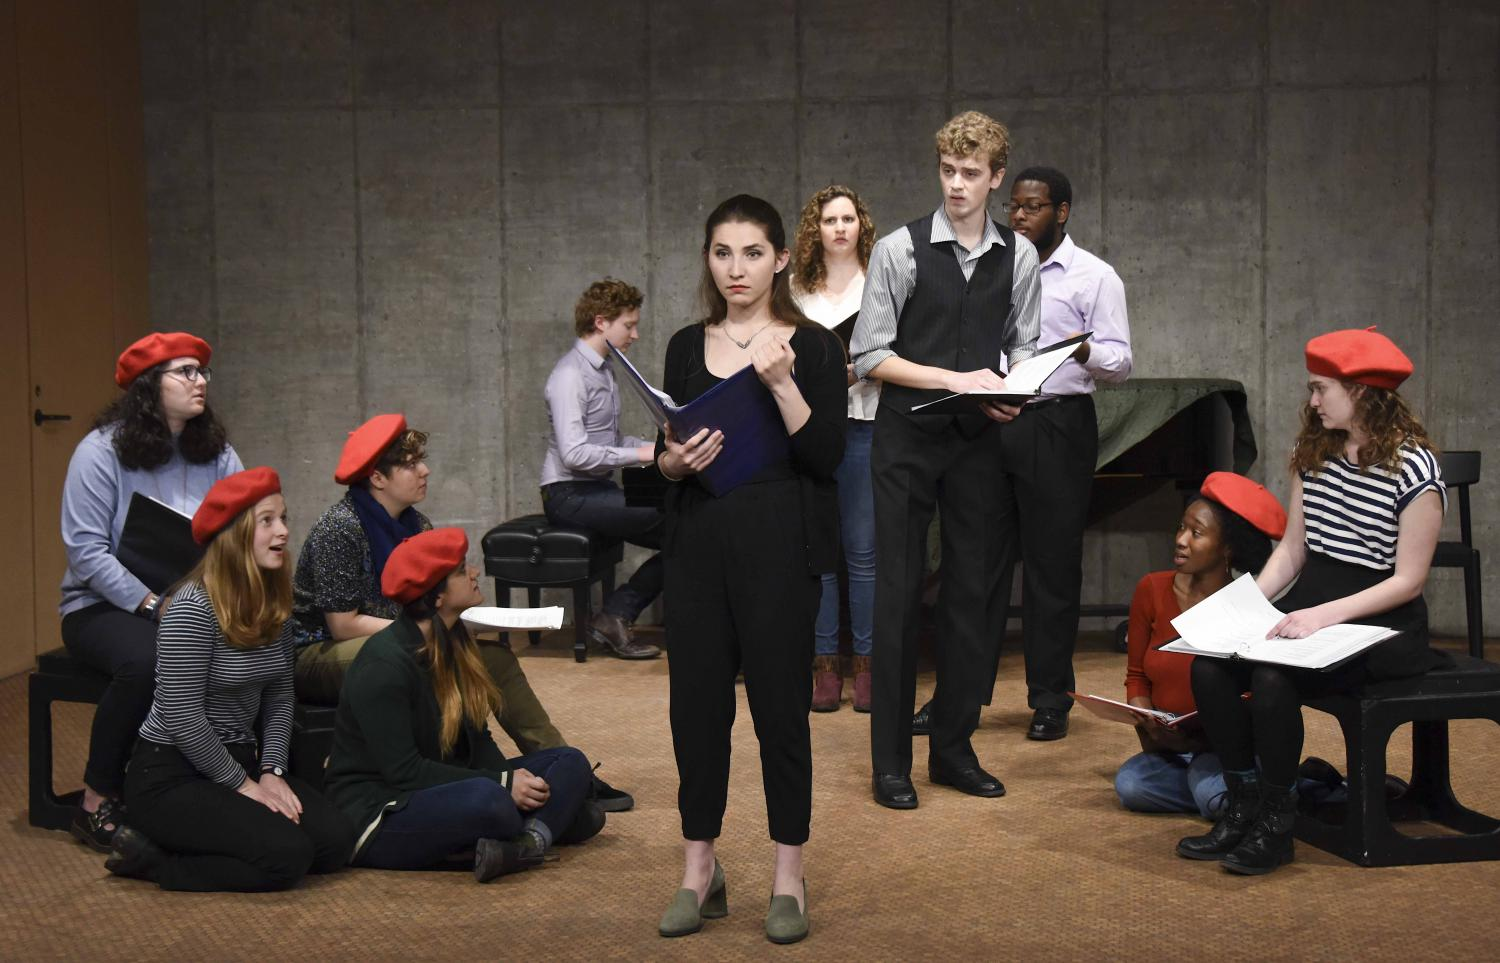 Student actors staged a dramatic reading of The Enchanted, a work in progress by John Kander, OC '51, and Greg Pierce, OC '00.